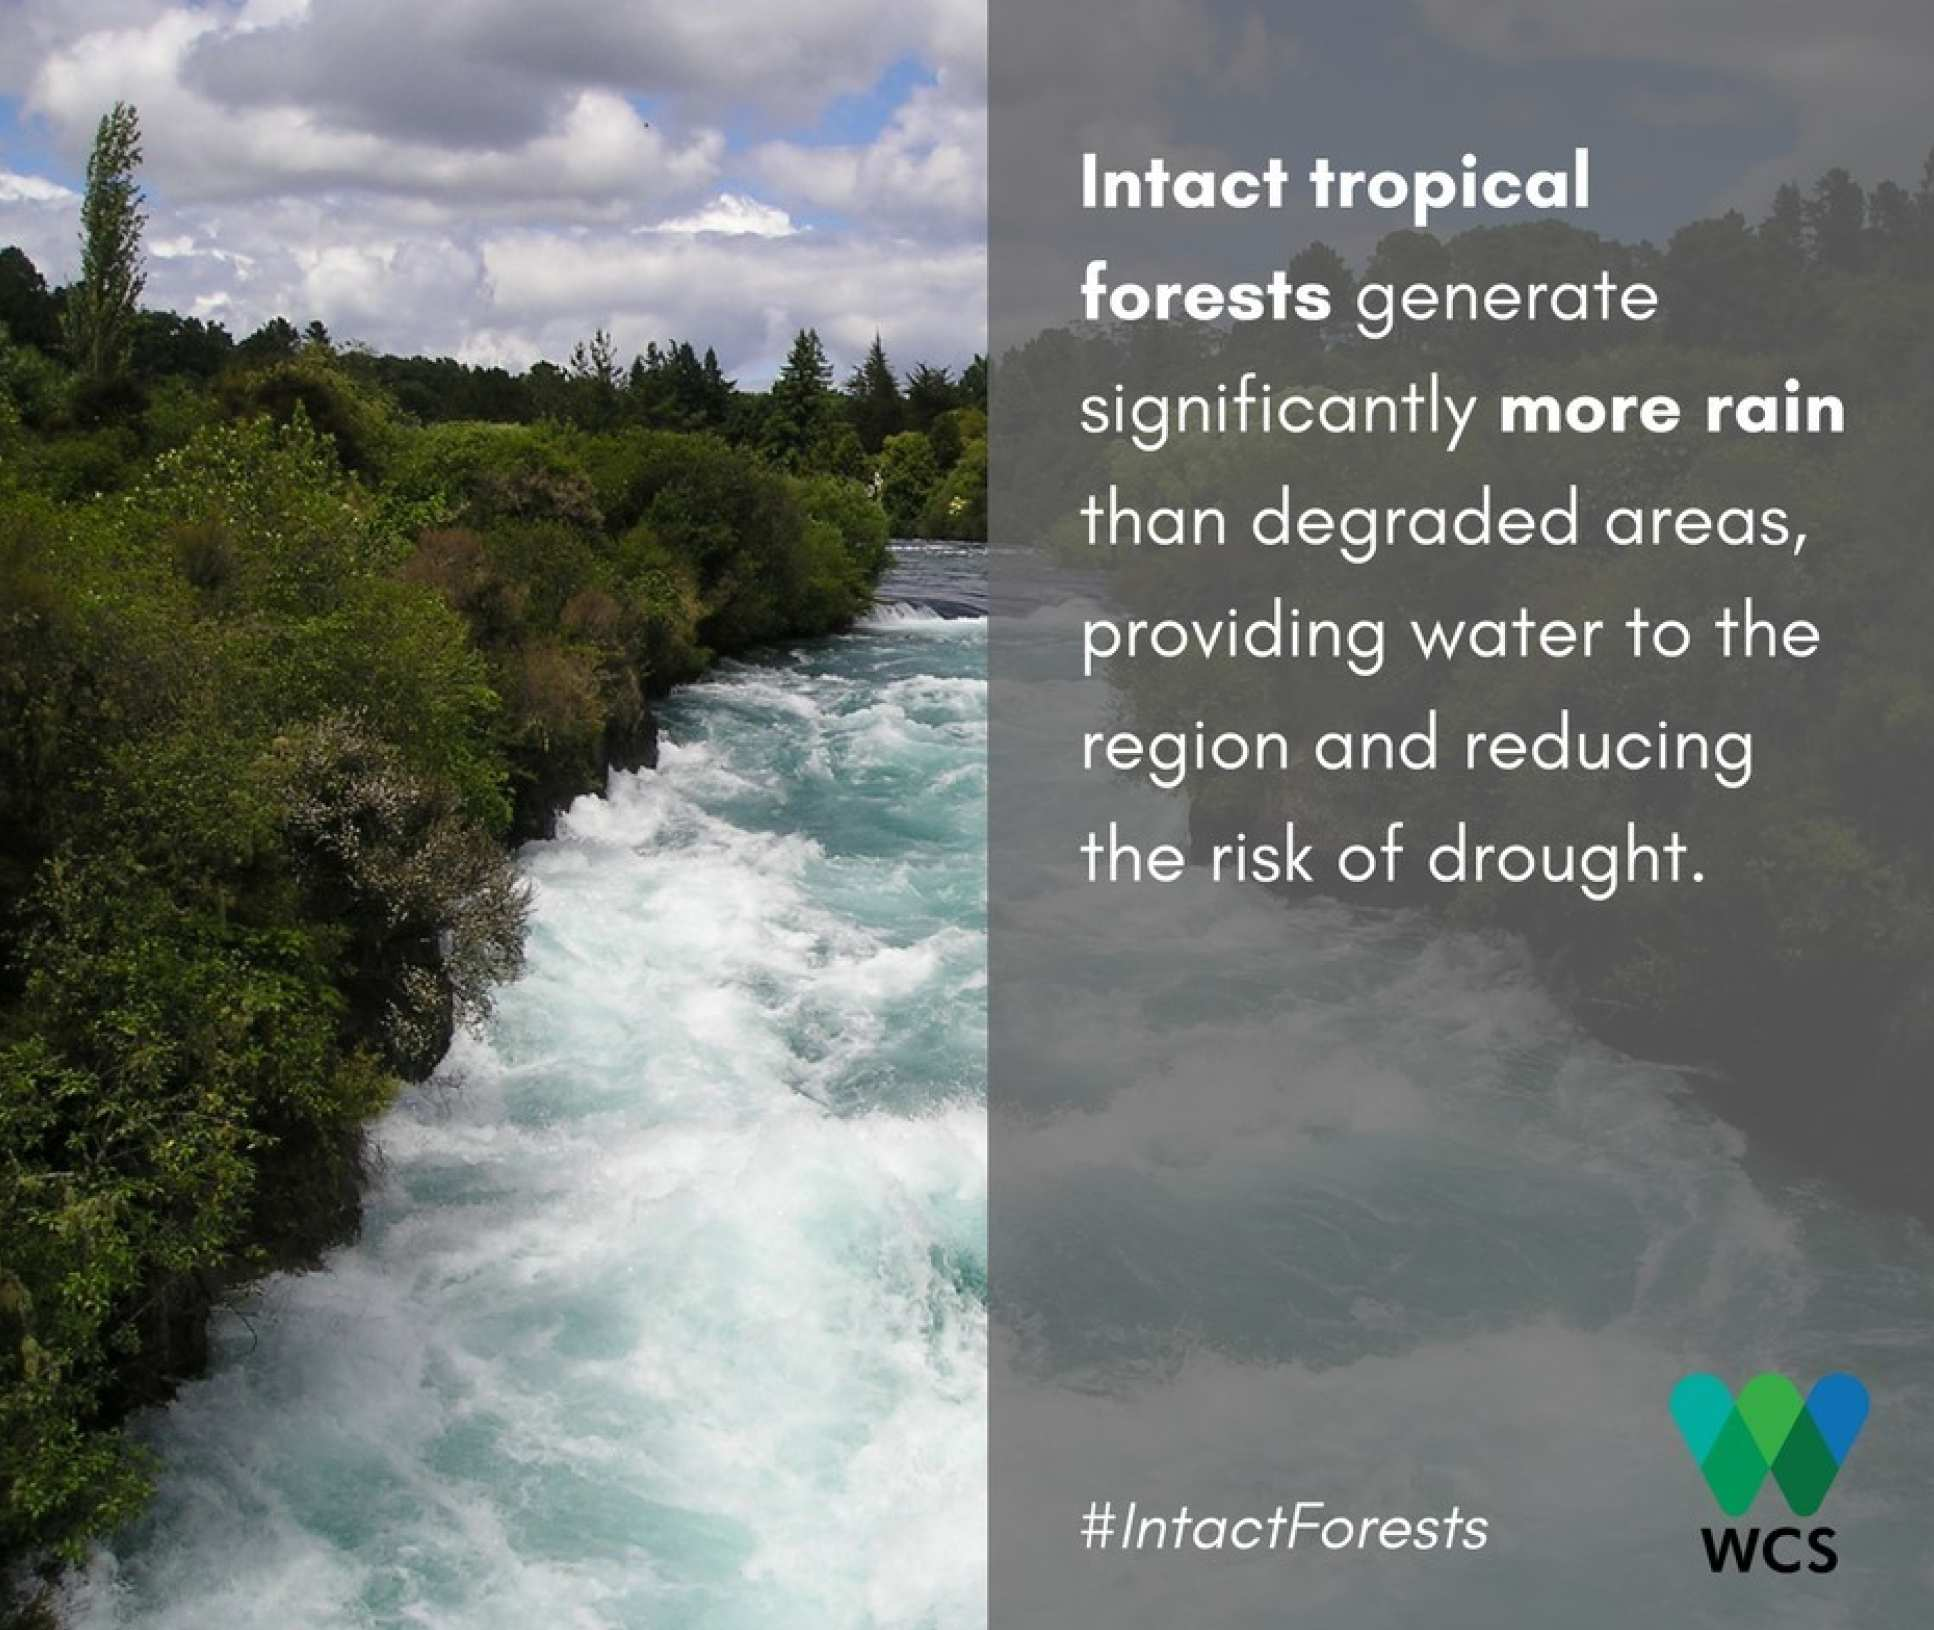 Image of a forest river with the caption: Intact tropical forests generate significantly more rain than degraded areas, providing water to the region and reducing the risk of drought.